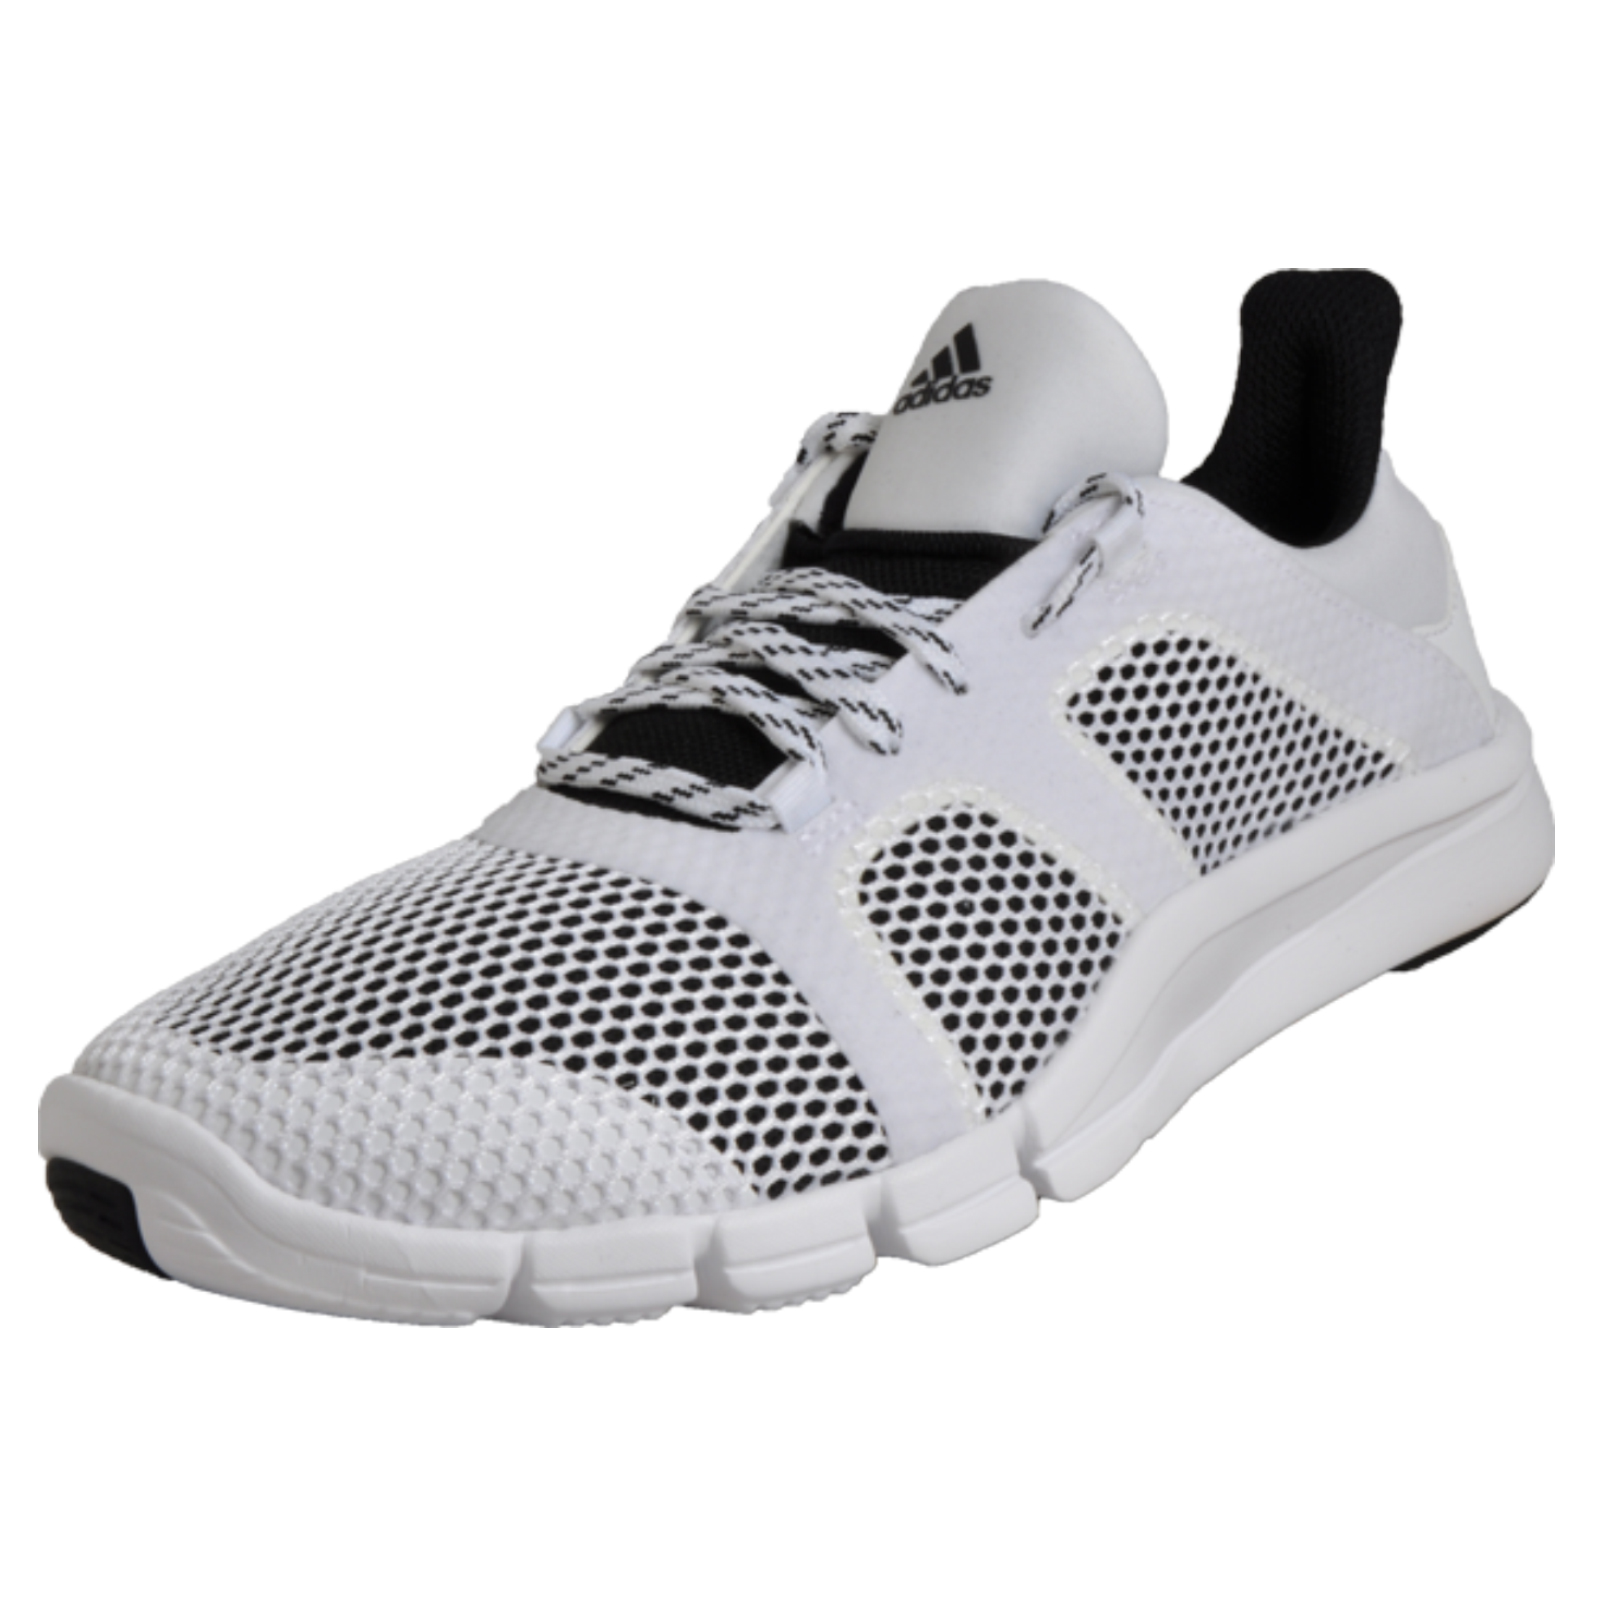 5d1d8003b Details about Adidas Adipure Flex Womens Jogging Fitness Gym Trainers White